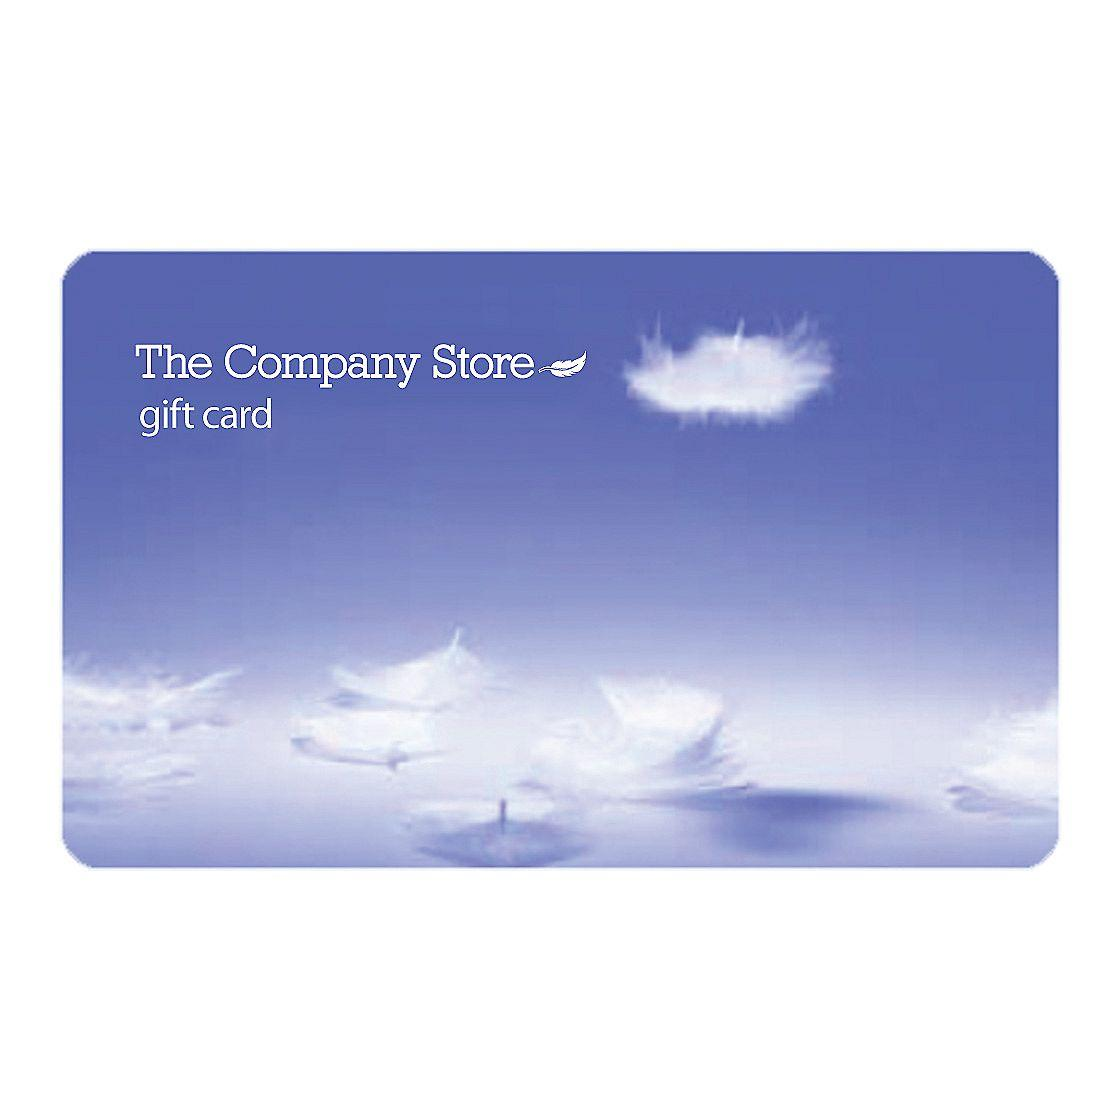 The Company Store Gift Card Treat someone special to the comforts of down...the luxury of pure  cotton sheets...fluffy new towels, whatever they've been dreaming of.  Available in increments of $5 up to $100, and then in increments of  $25 up to $500 Please use whole dollar amounts, no decimals Accepted for online, catalog and outlet store purchases.  Also  accepted for Company Kids purchases! Our Gift Cards have no fees and never expire Gift Cards are shipped free of charge via USPS First Class  Mail. Should arrive within five to seven business days.  Gift Cards can be shipped to only one address per order.  If  you purchase more than four cards per order, cards will be shipped  separately in packages of four If you wish to order merchandise in addition to Gift Cards to  be sent to a different address, please place your order by phone The Company Store promotional discounts may not be used towards  the purchase of a Gift Card  Gift Cards are not subject to state and local sales tax or  delivery charges. If these charges appear within your checkout screen  they will not be included on your credit card.